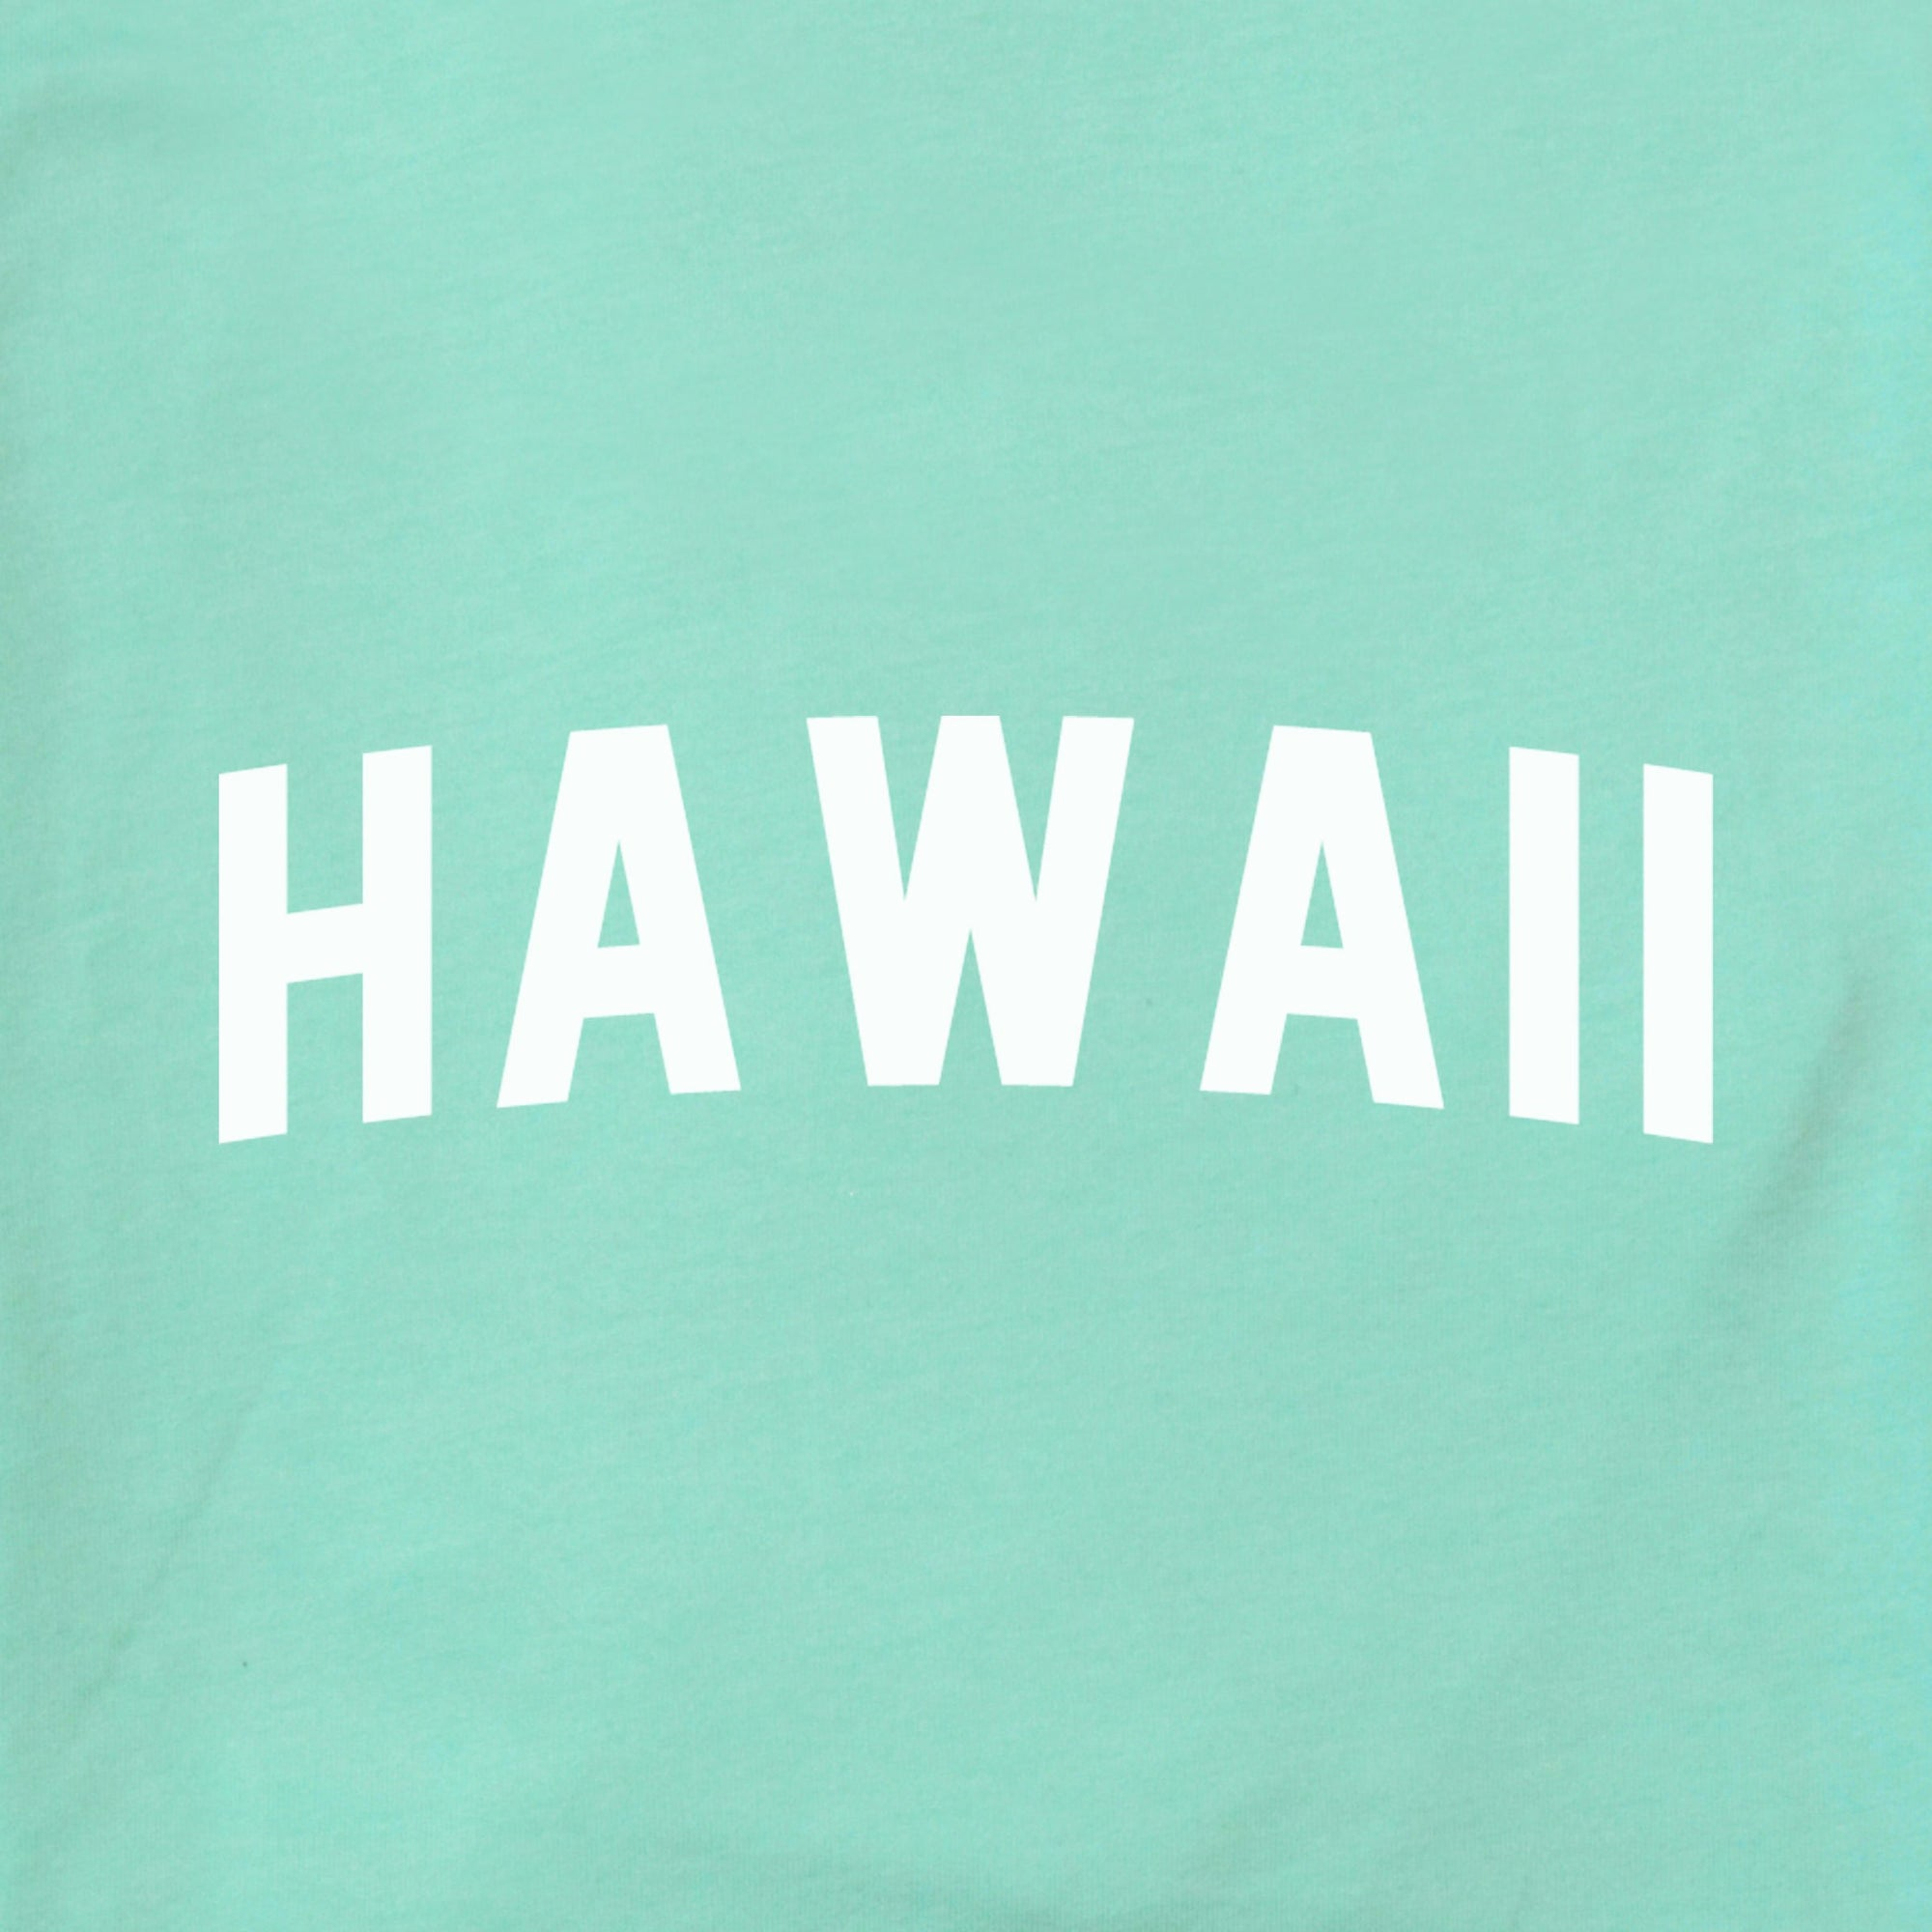 Hawaii Arched The Home T XS Mint